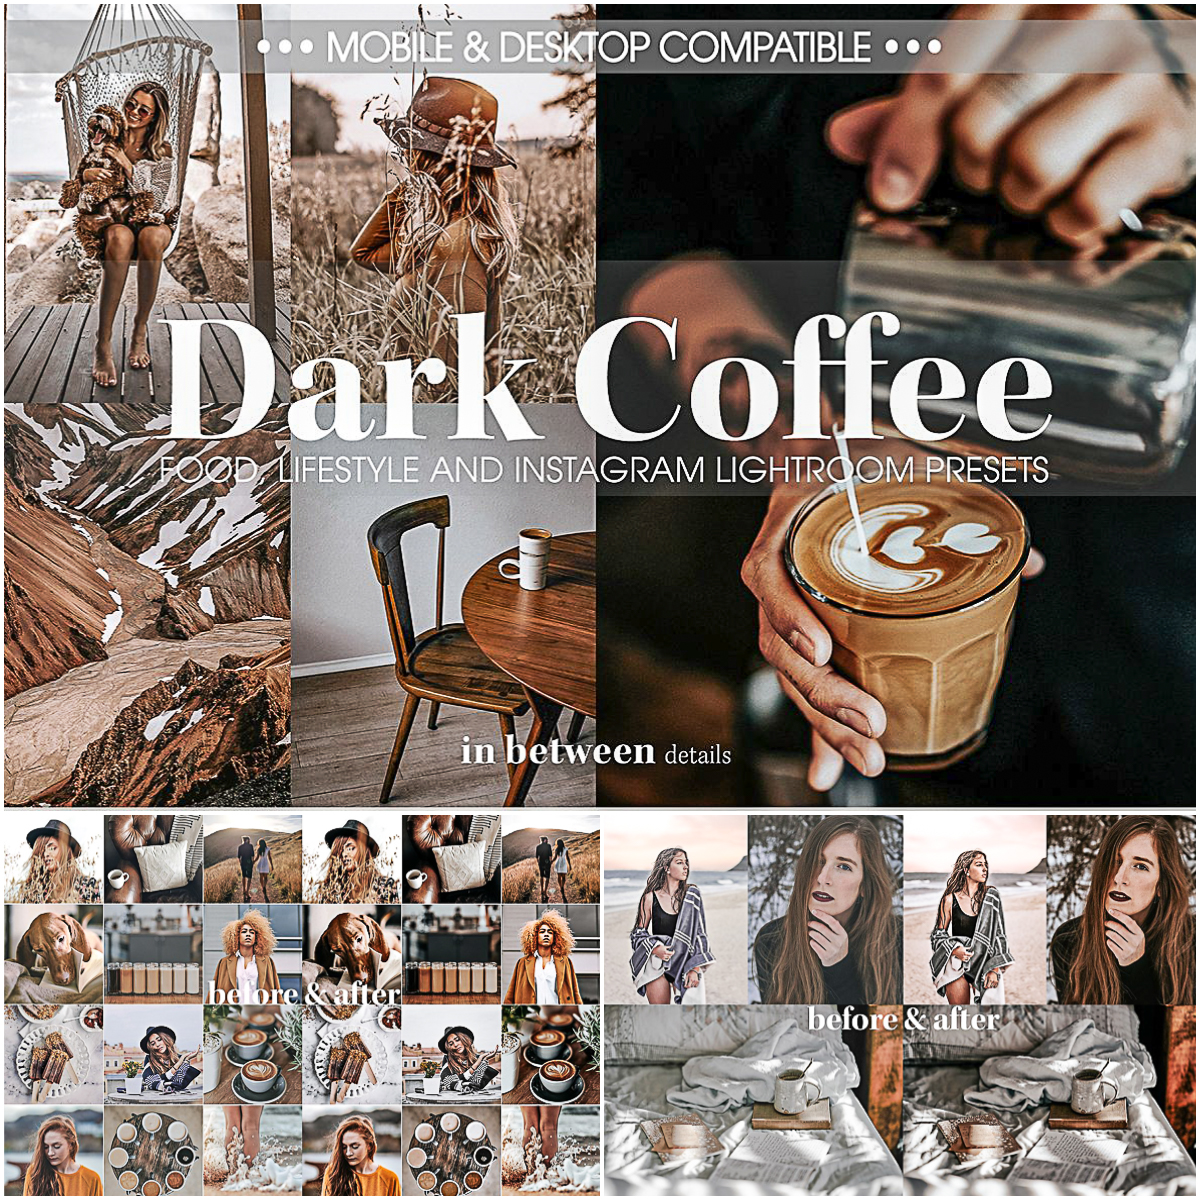 Dark Coffee Mobile and Desktop Presets | Free download